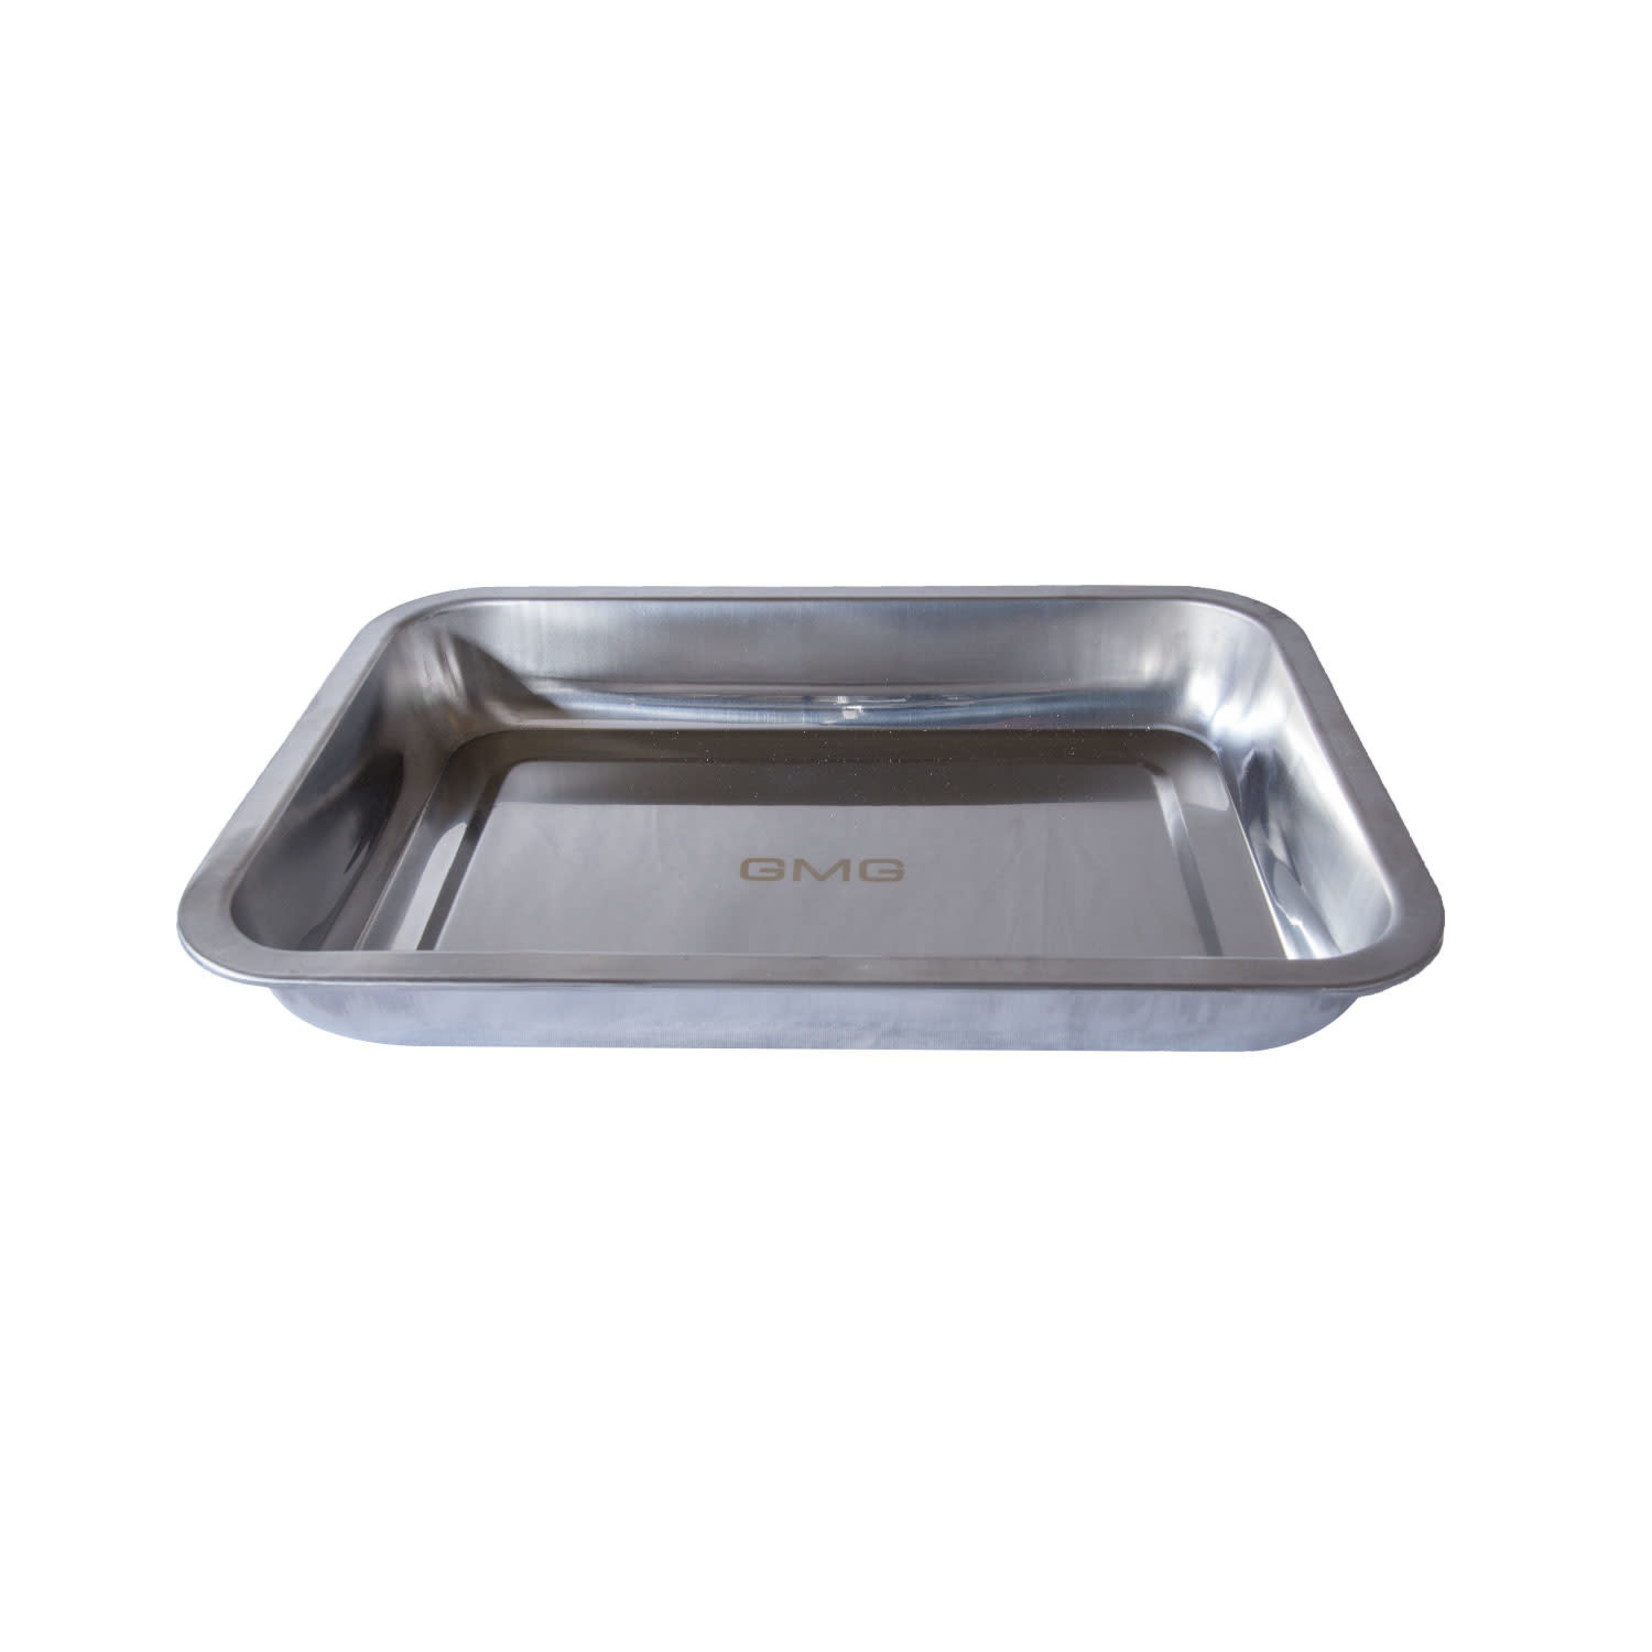 Green Mountain Grill GMG ovenschaal RVS 35x30x4 cm